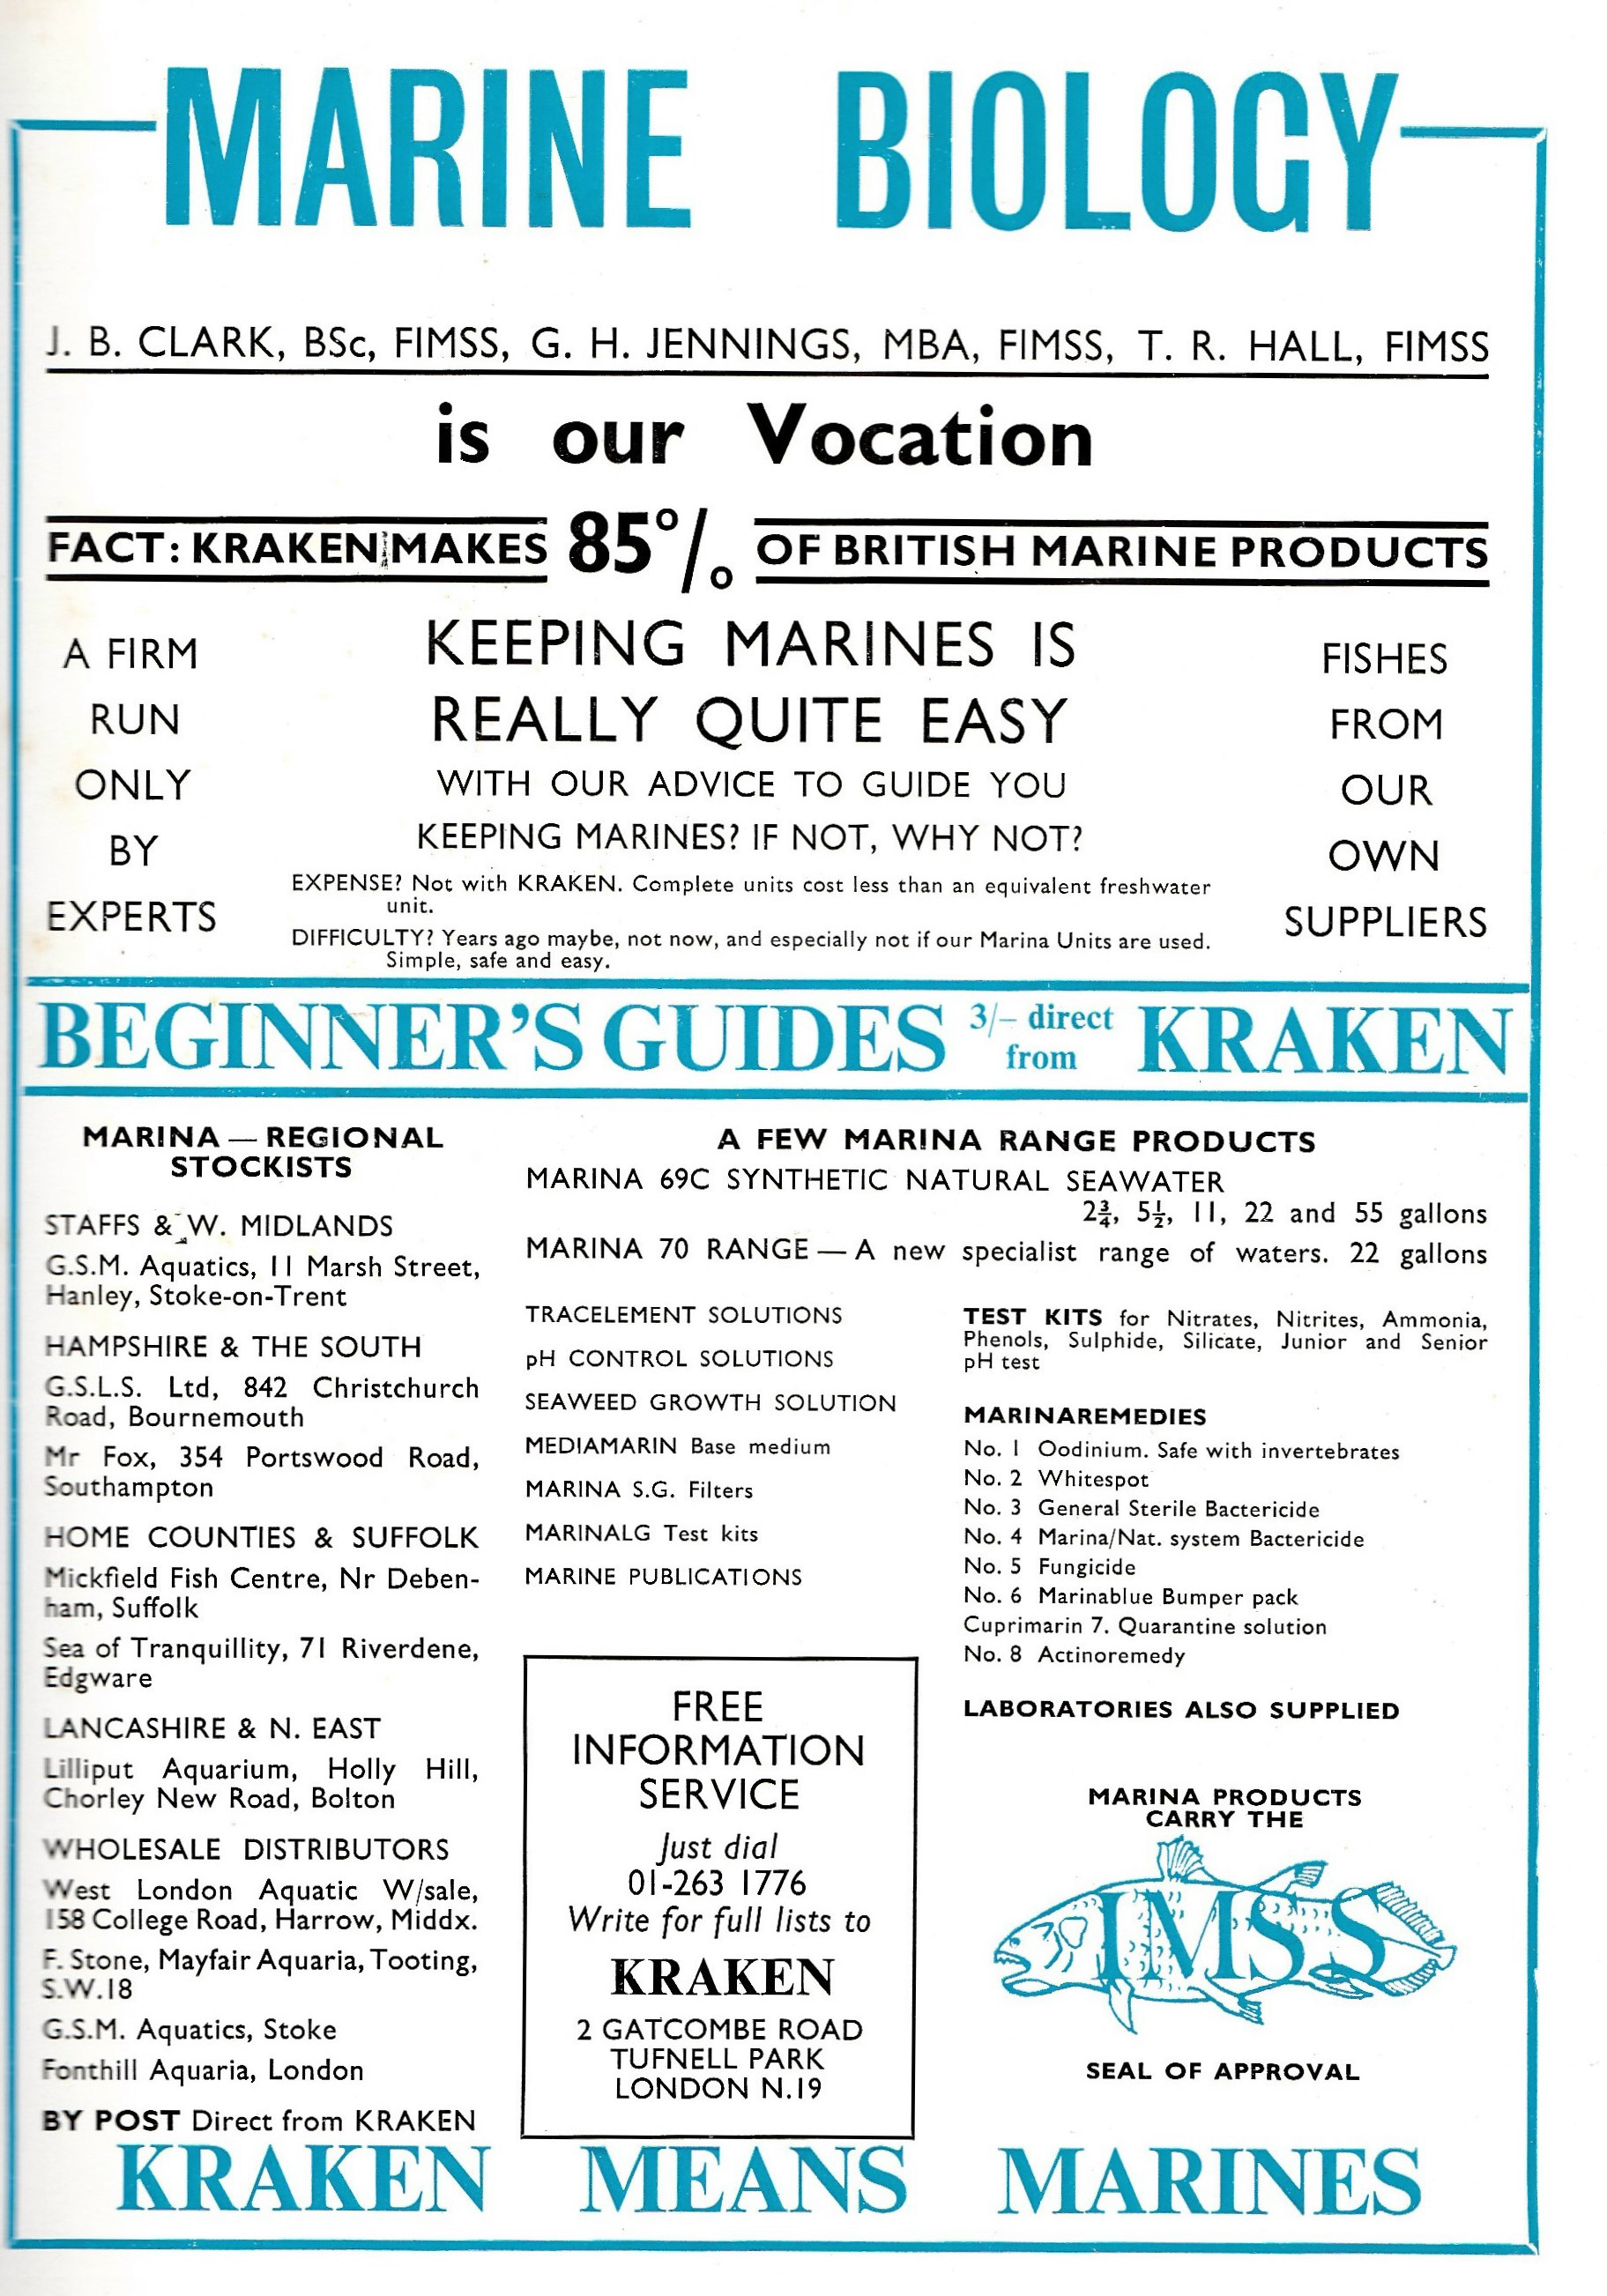 Kraken product range and stockists of Marina  in 1969